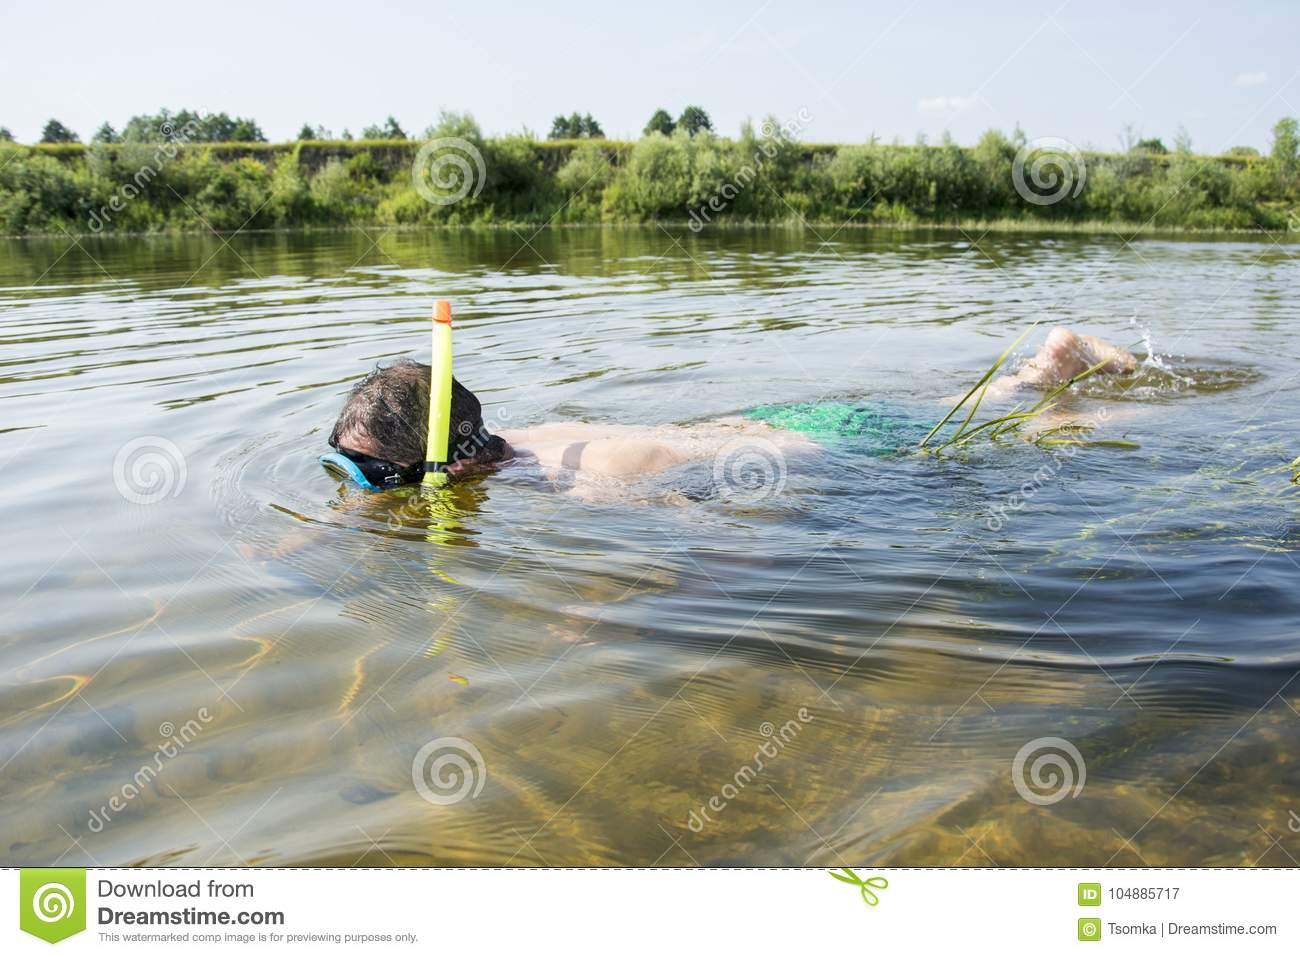 In summer, a man in a mask and a tube in clear water swim along